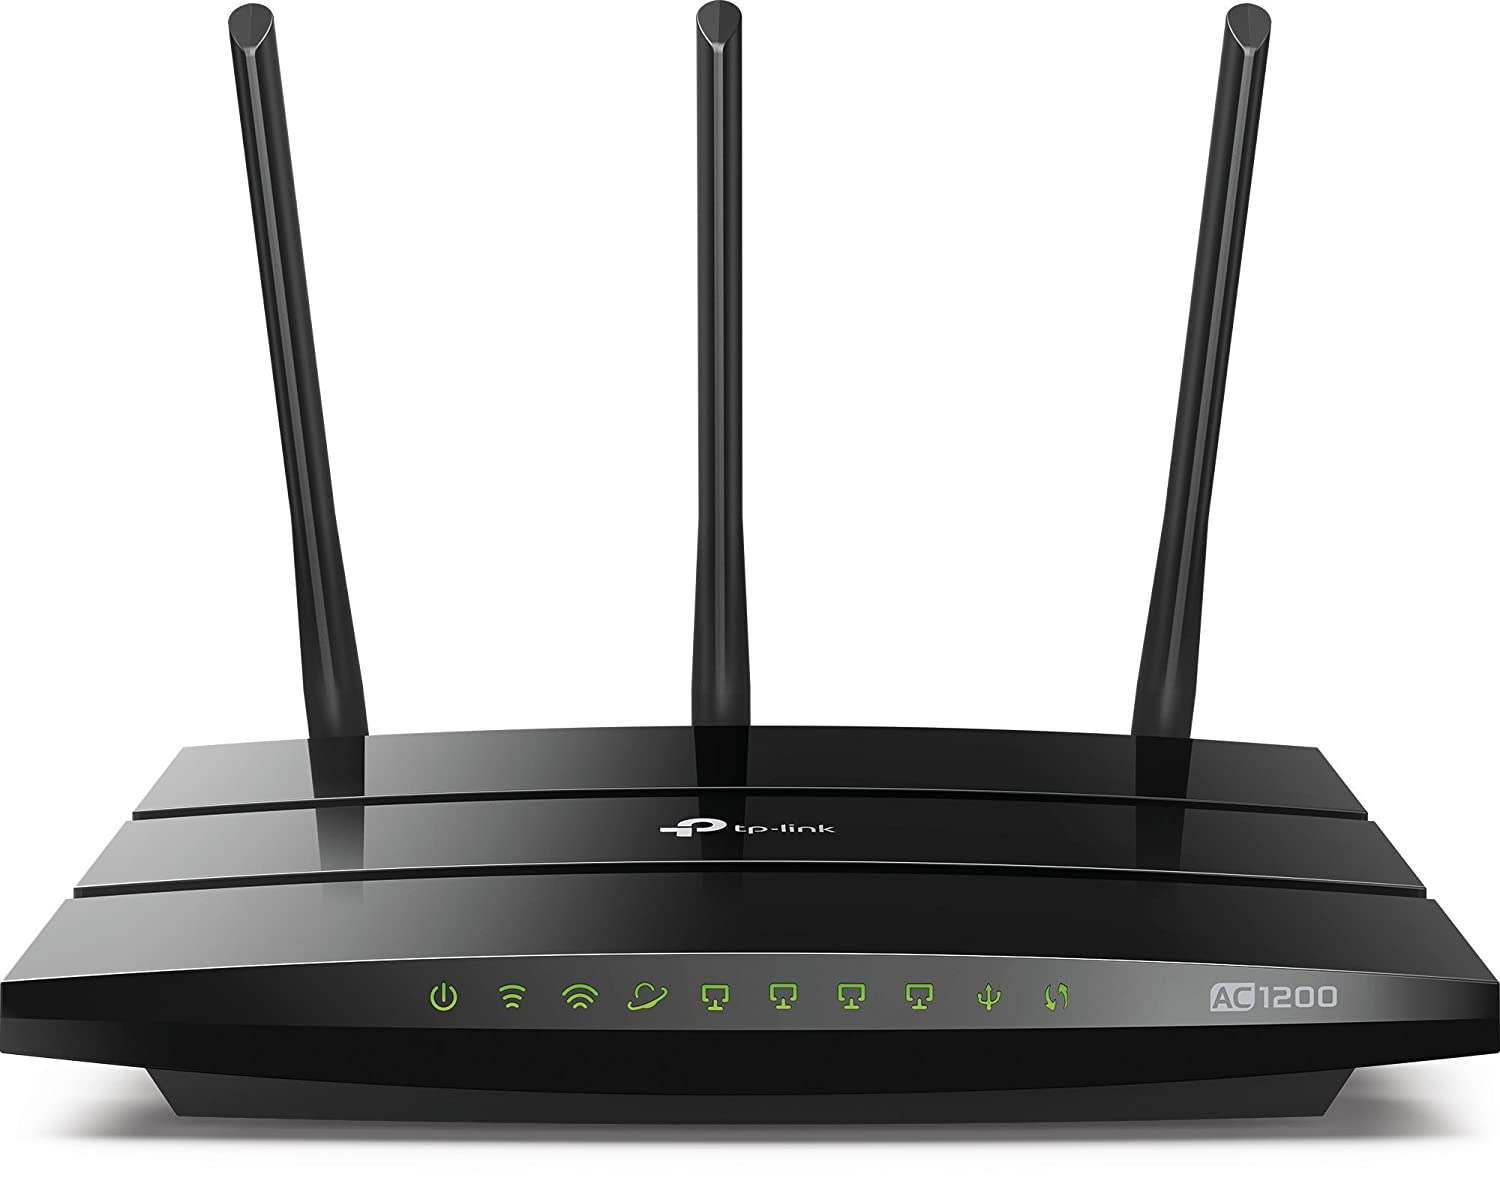 TP-Link AC1200 Smart WiFi Router Black Friday Deal 2019